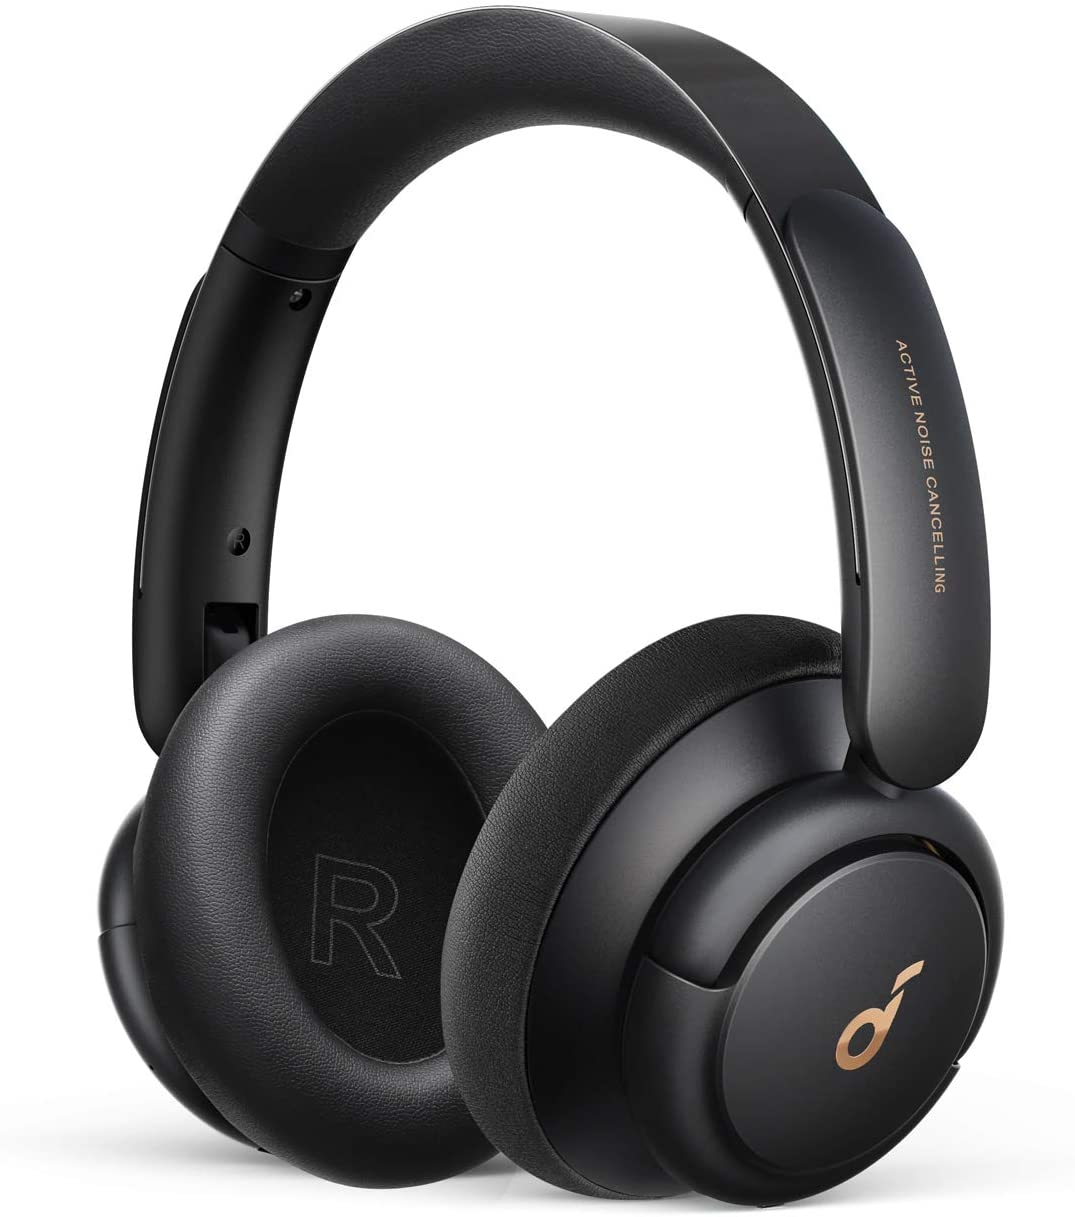 Save $12 + extra $4 off on Anker Life Q30 Bluetooth Headphones